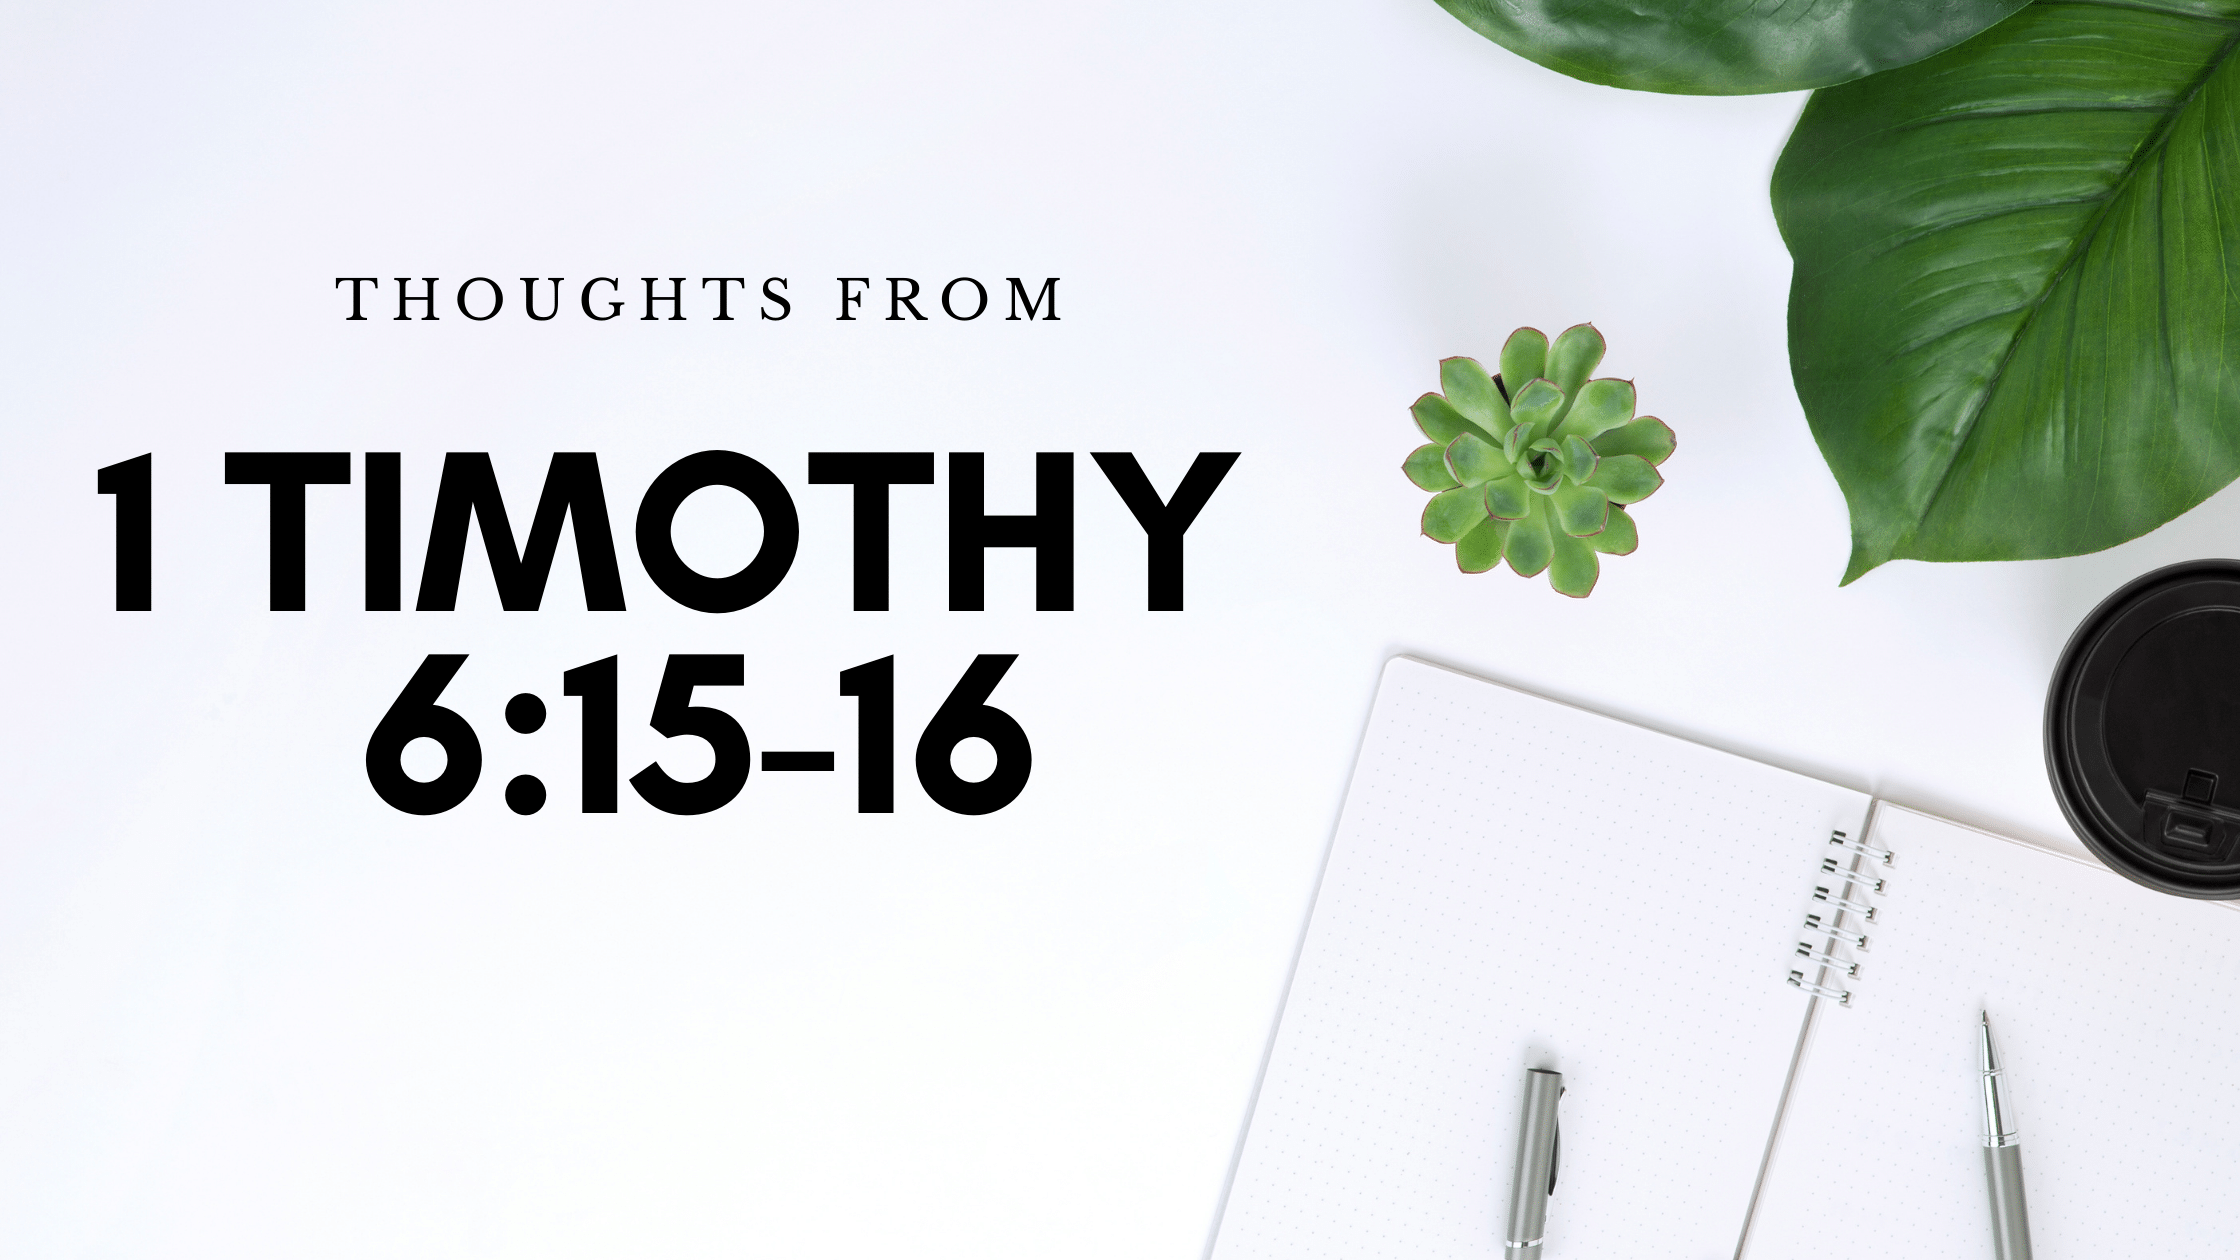 Thoughts From 1 Timothy 6:15-16